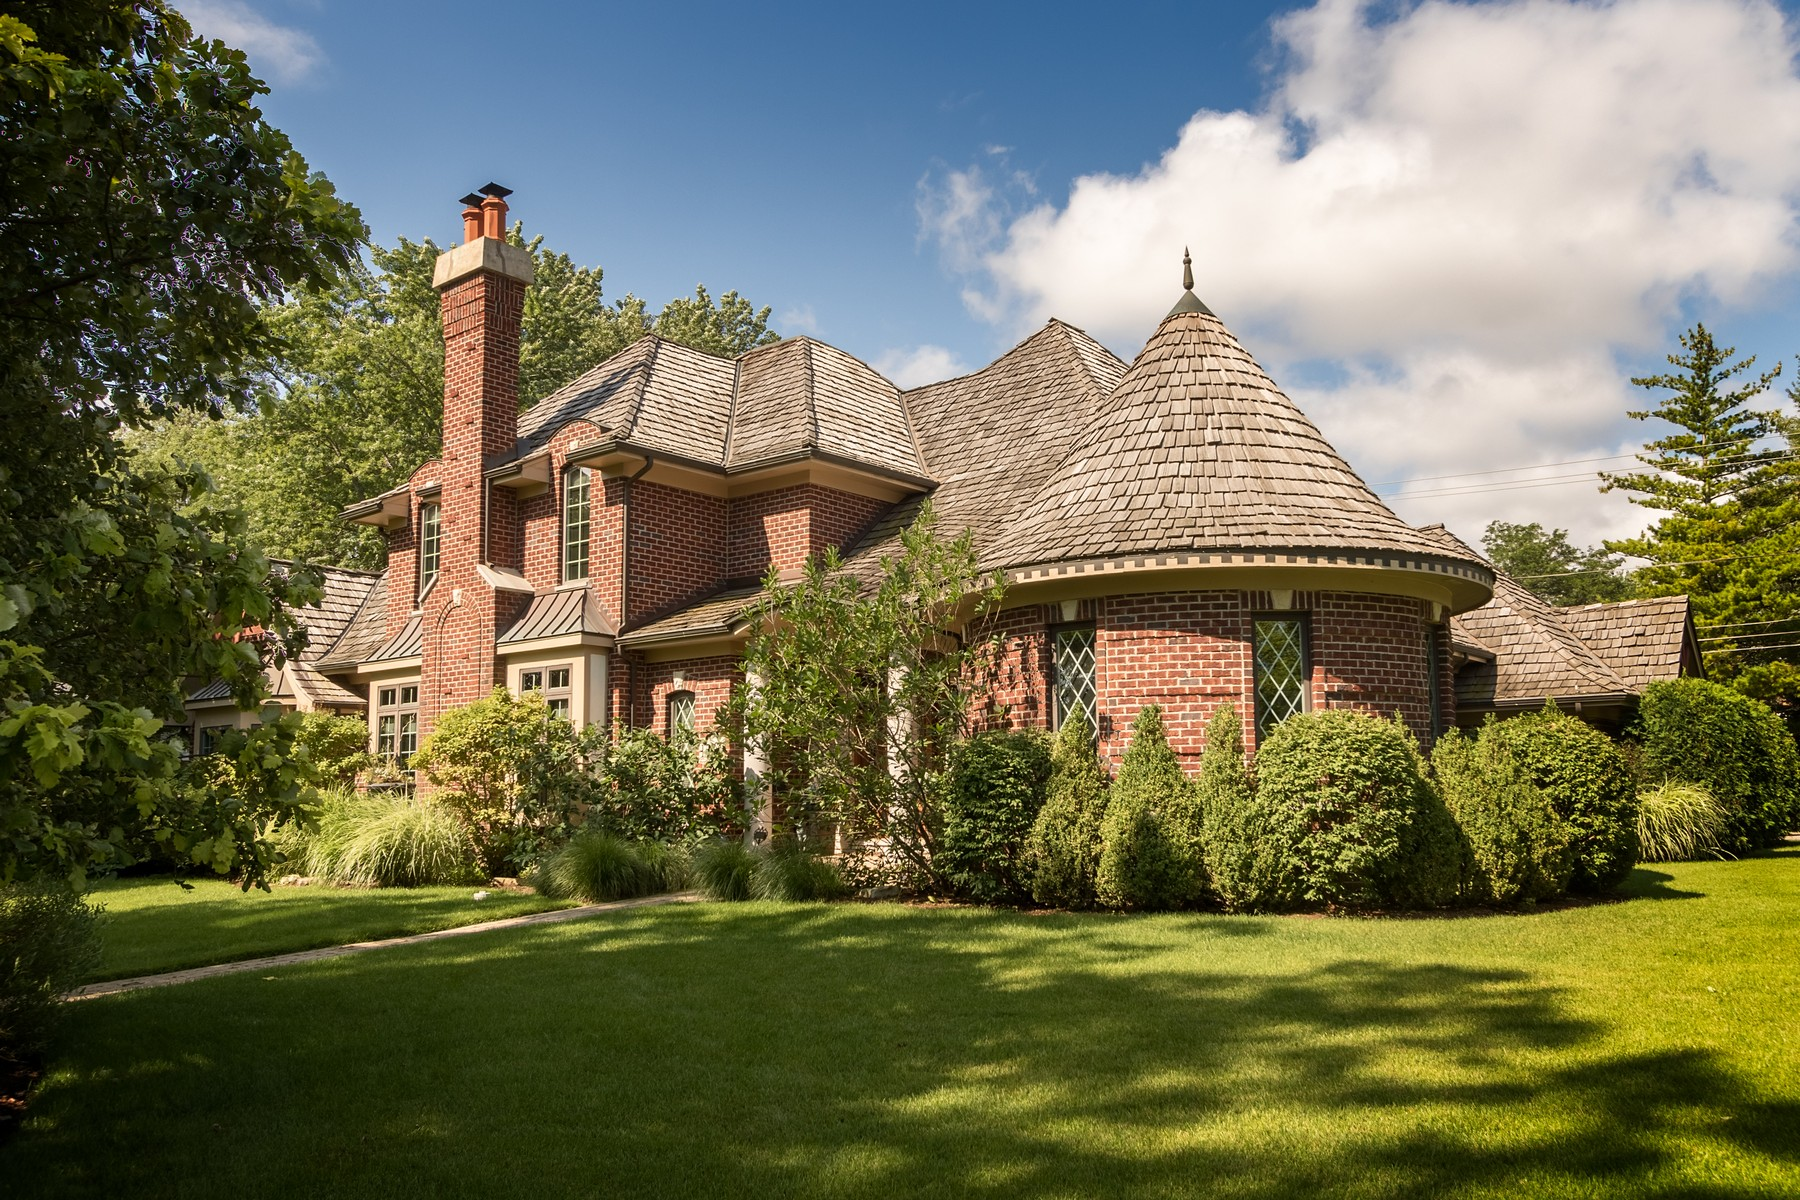 Casa Unifamiliar por un Venta en Spectacular Six Bedroom Home 1550 Hawthorne Lane Glenview, Illinois, 60025 Estados Unidos